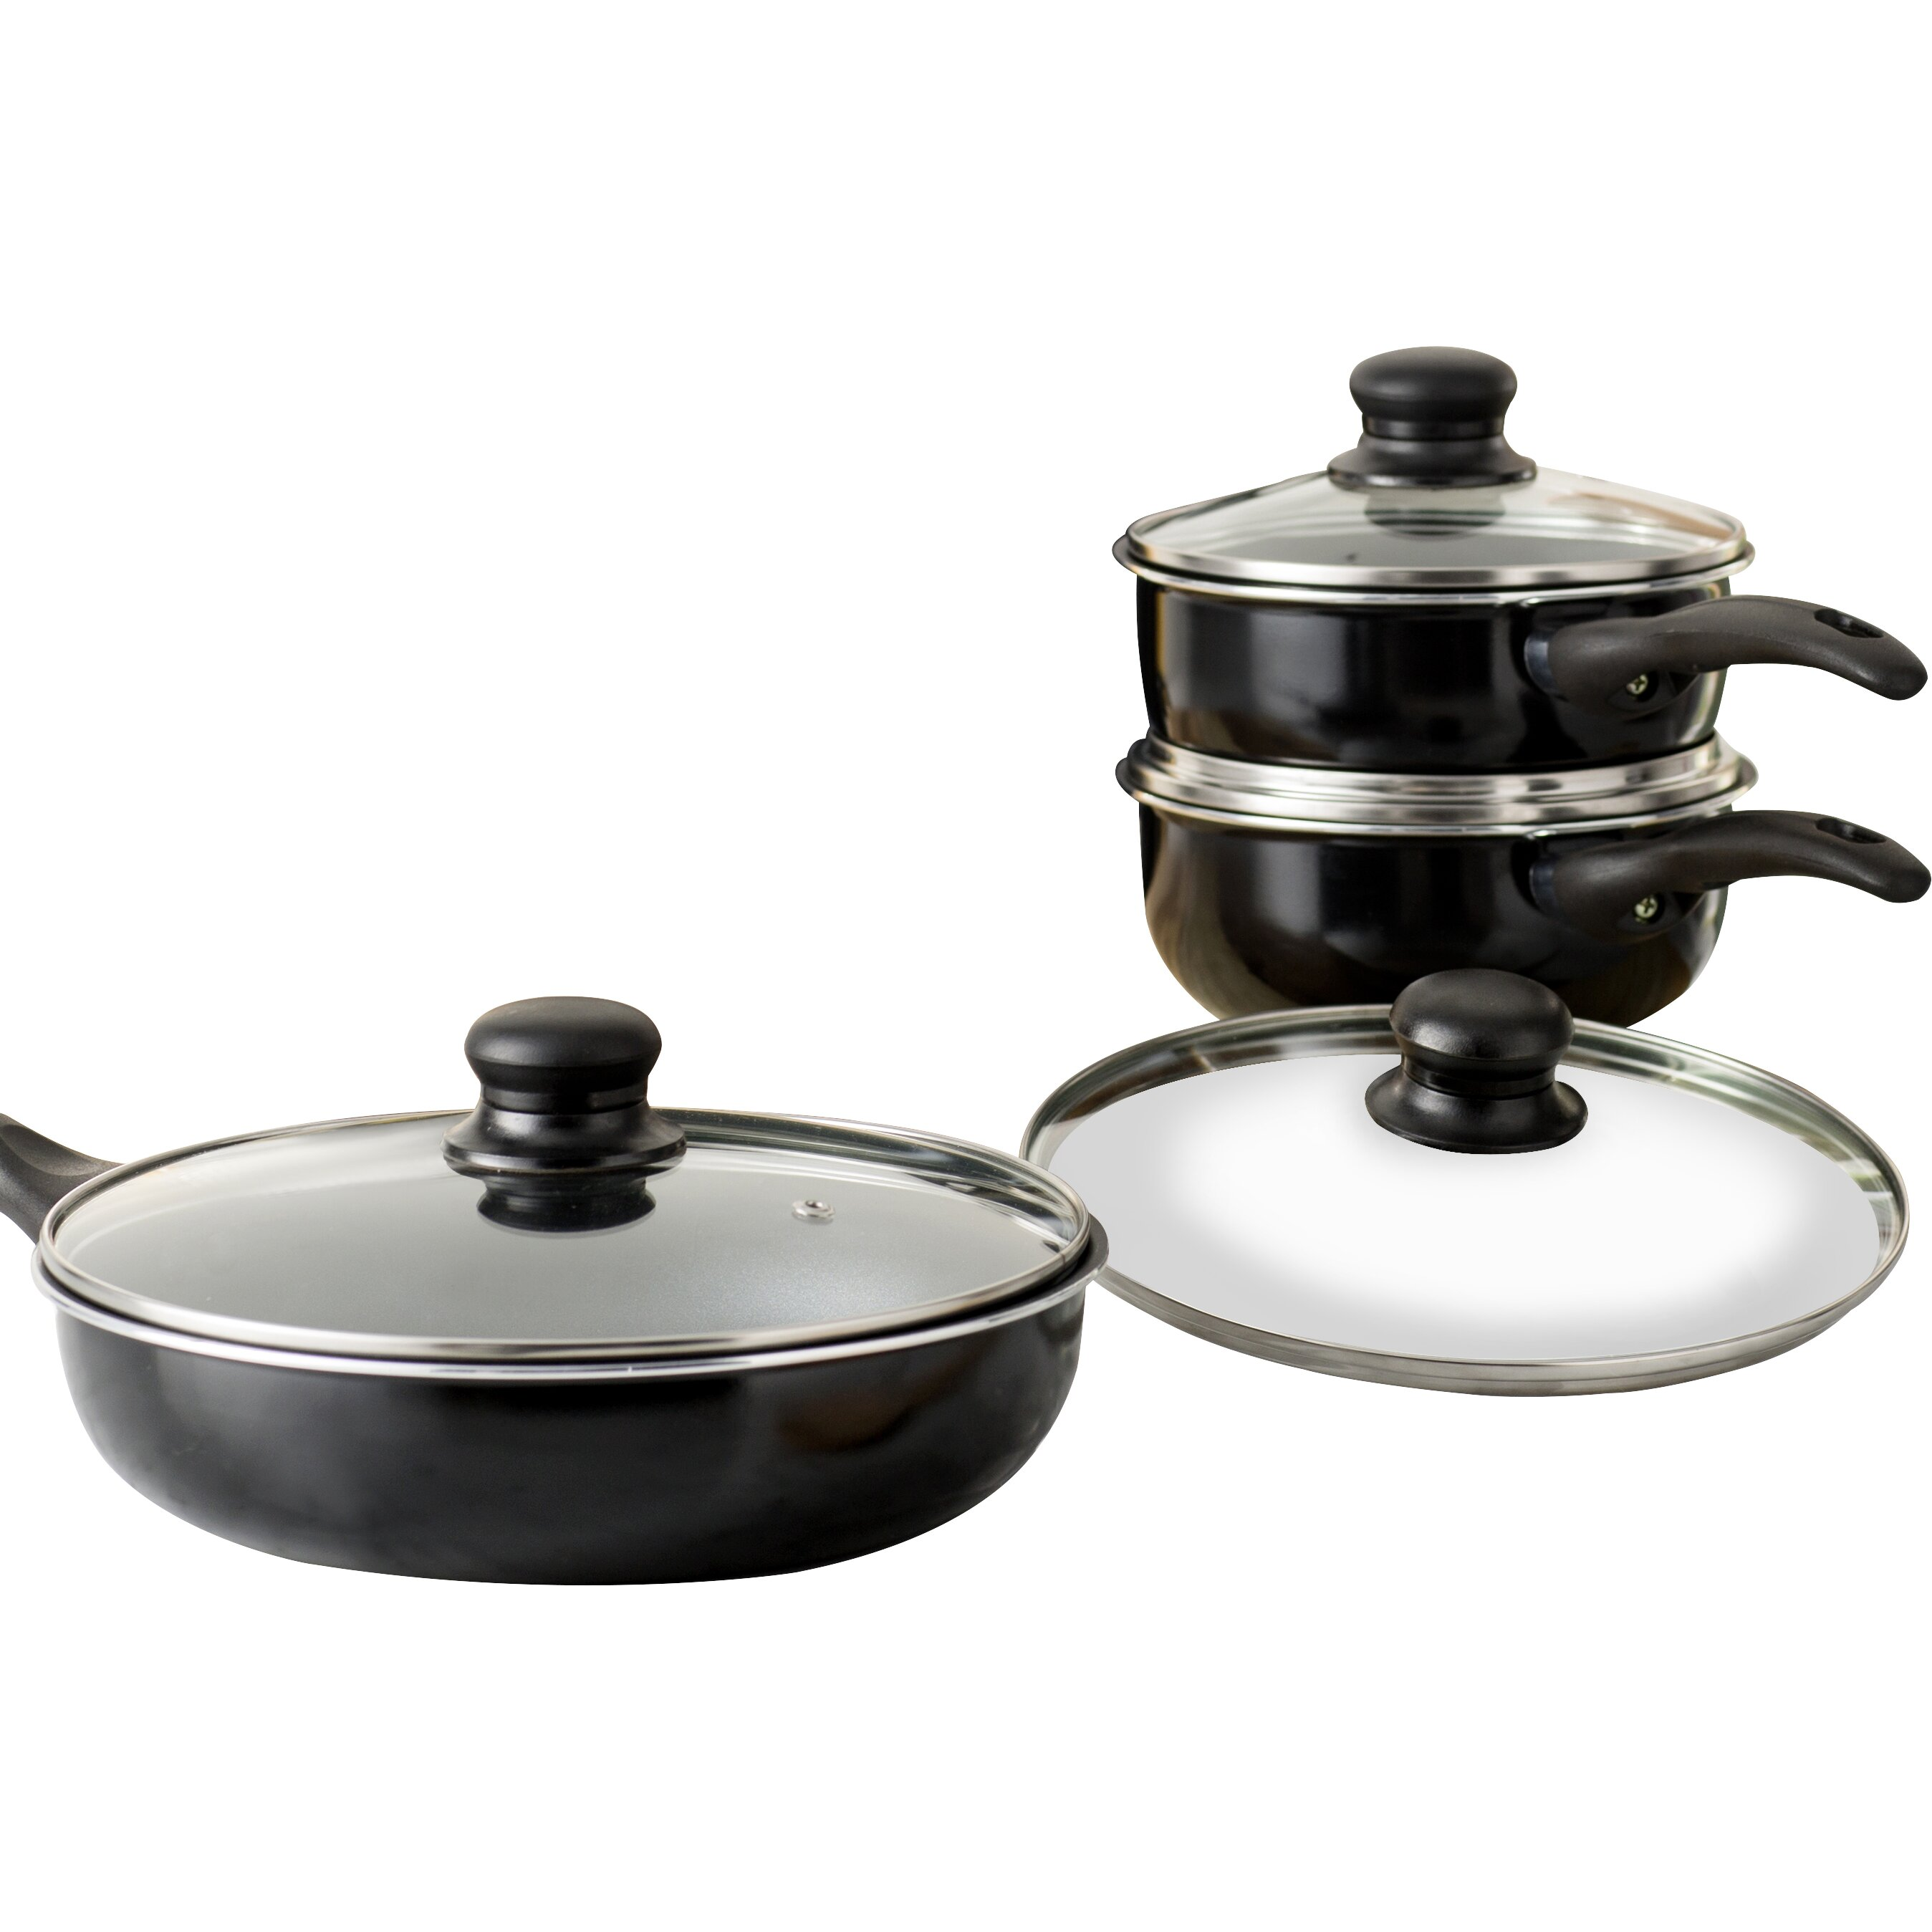 Room Essentials Cookware Set